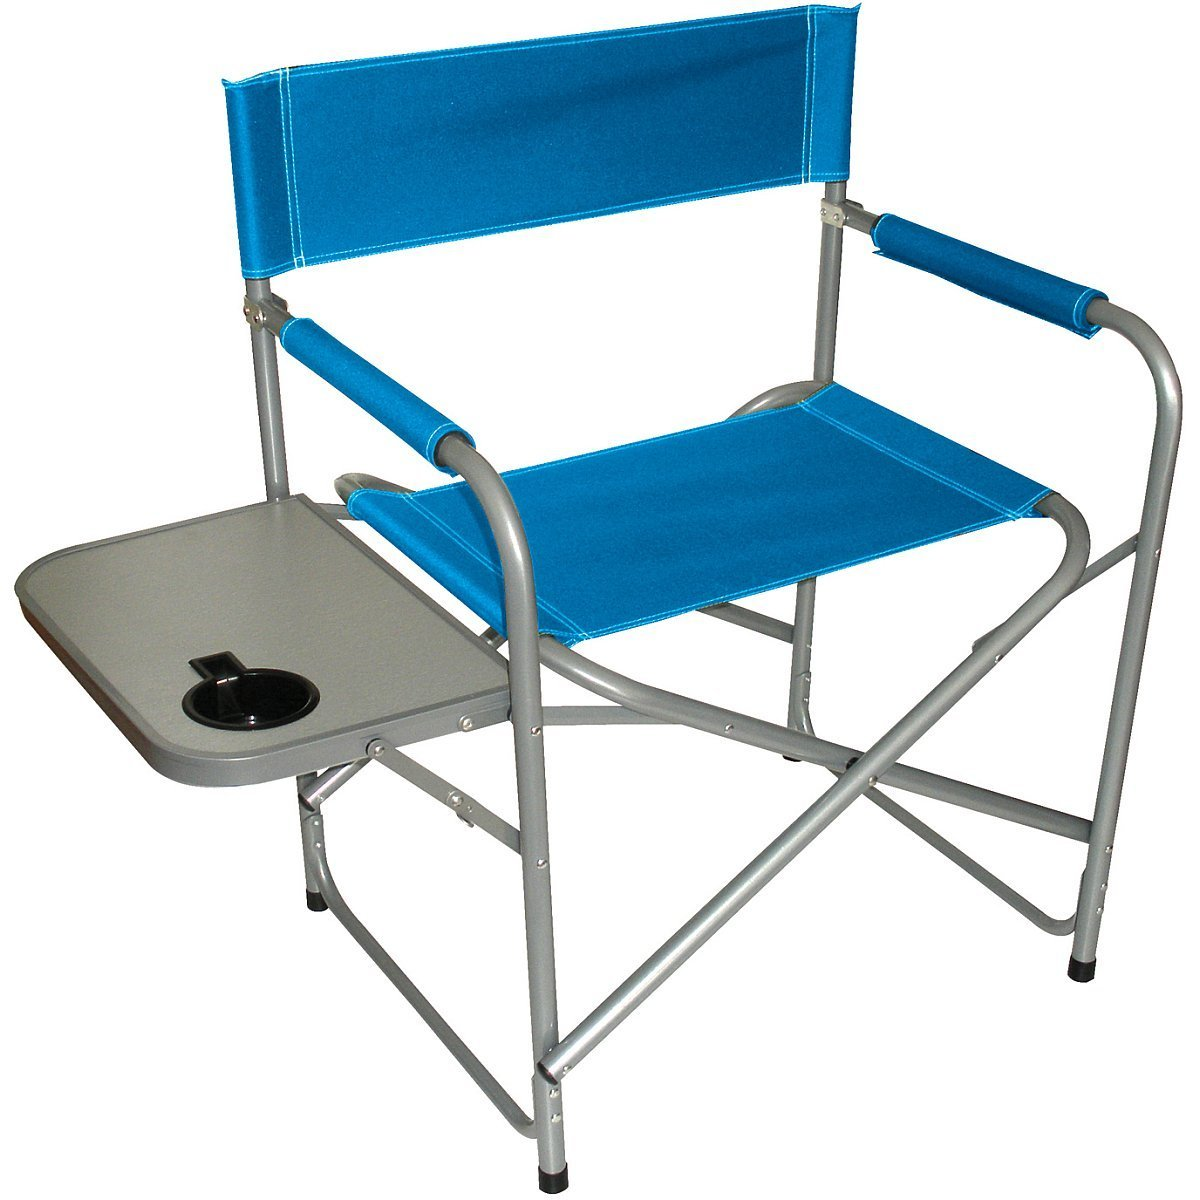 Texsport Steel Directors Chair with Side Table and Drink Holder [並行輸入品] B01IRFUKU4